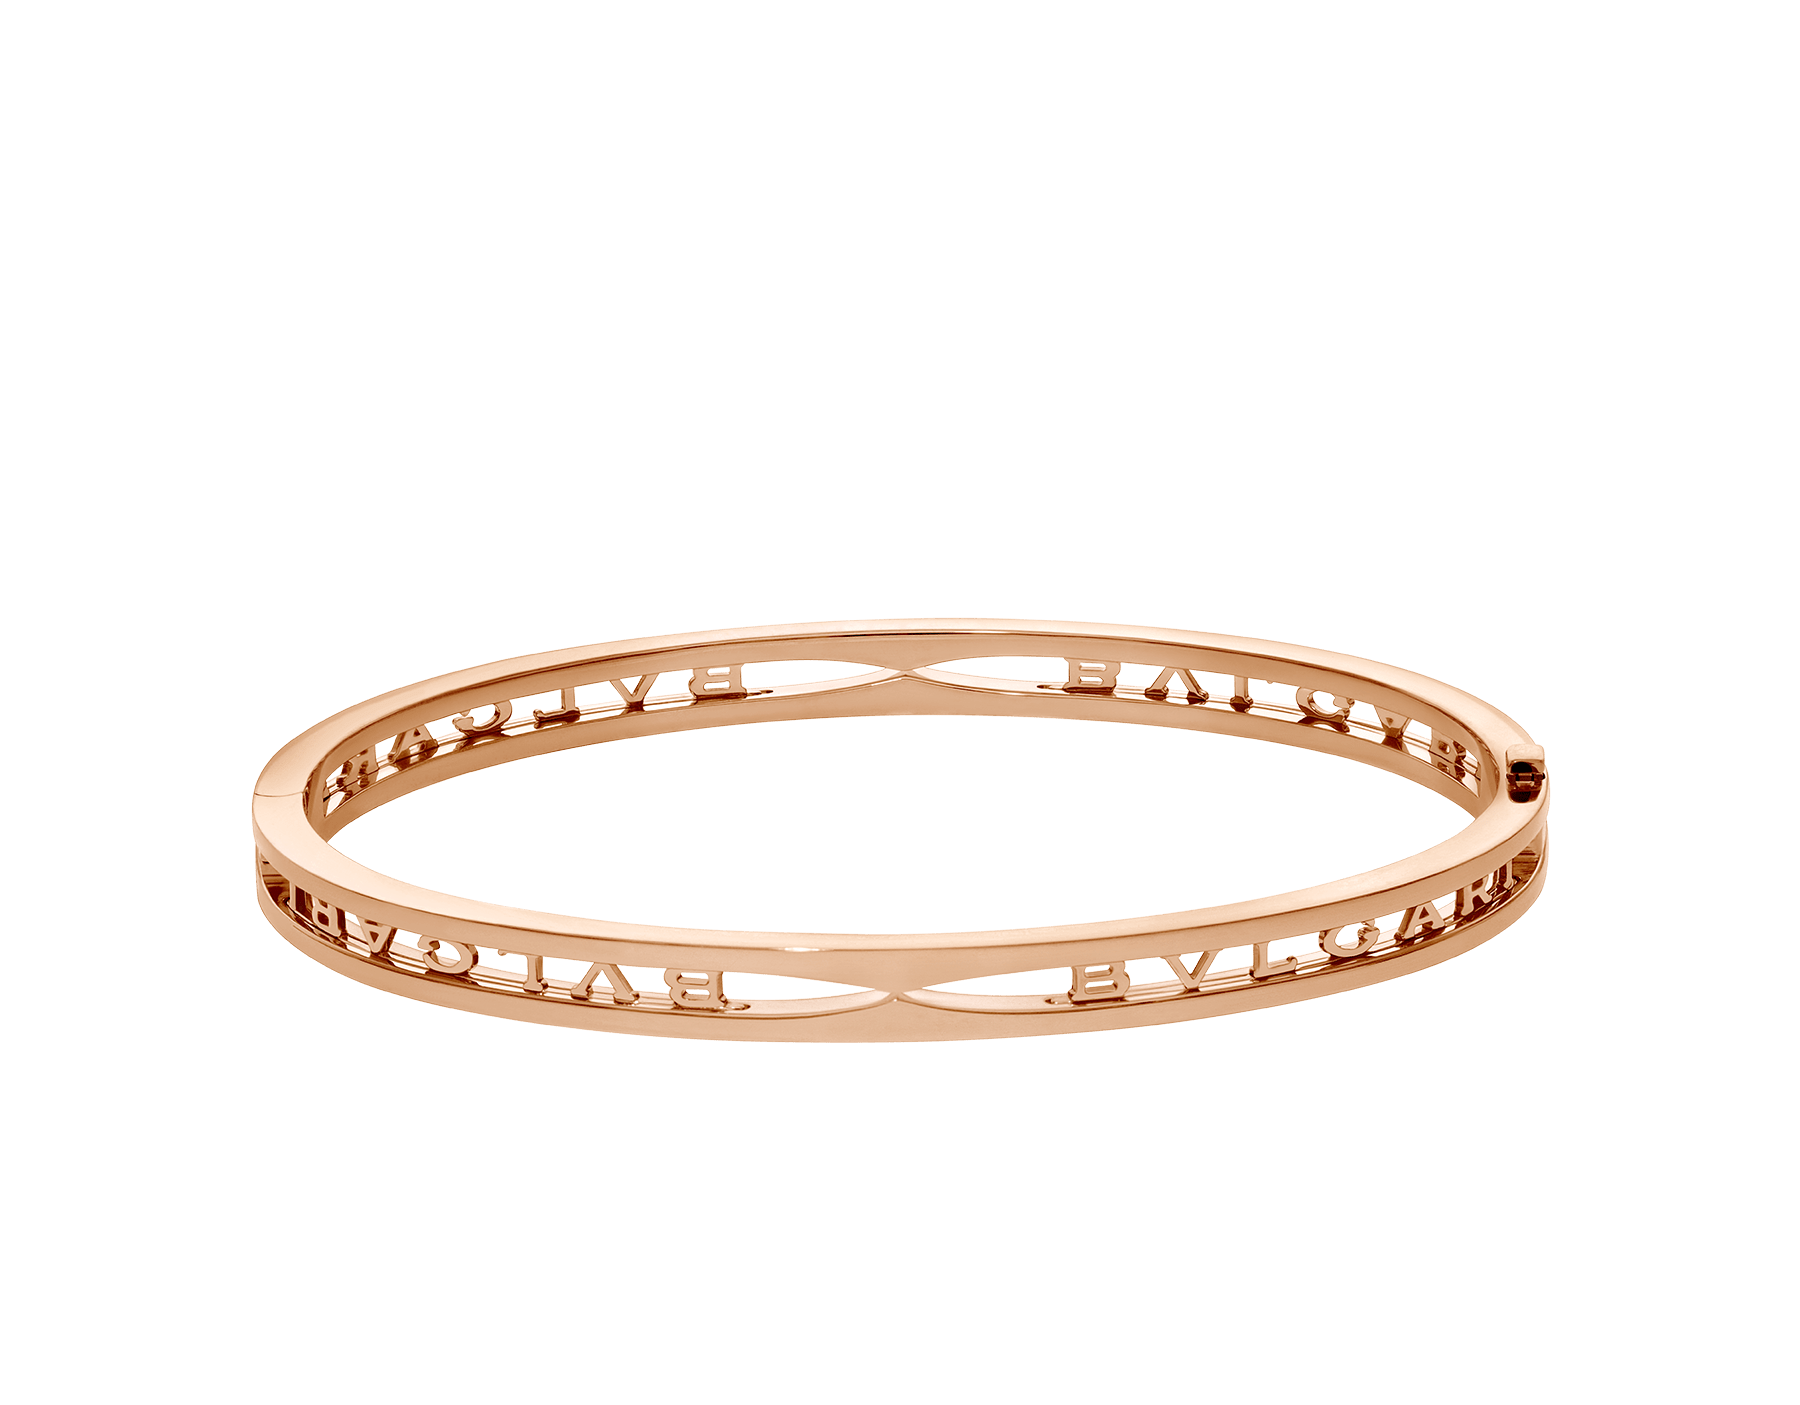 B.zero1 18 kt rose gold bangle bracelet with BVLGARI logo on the spiral BR858669 image 2